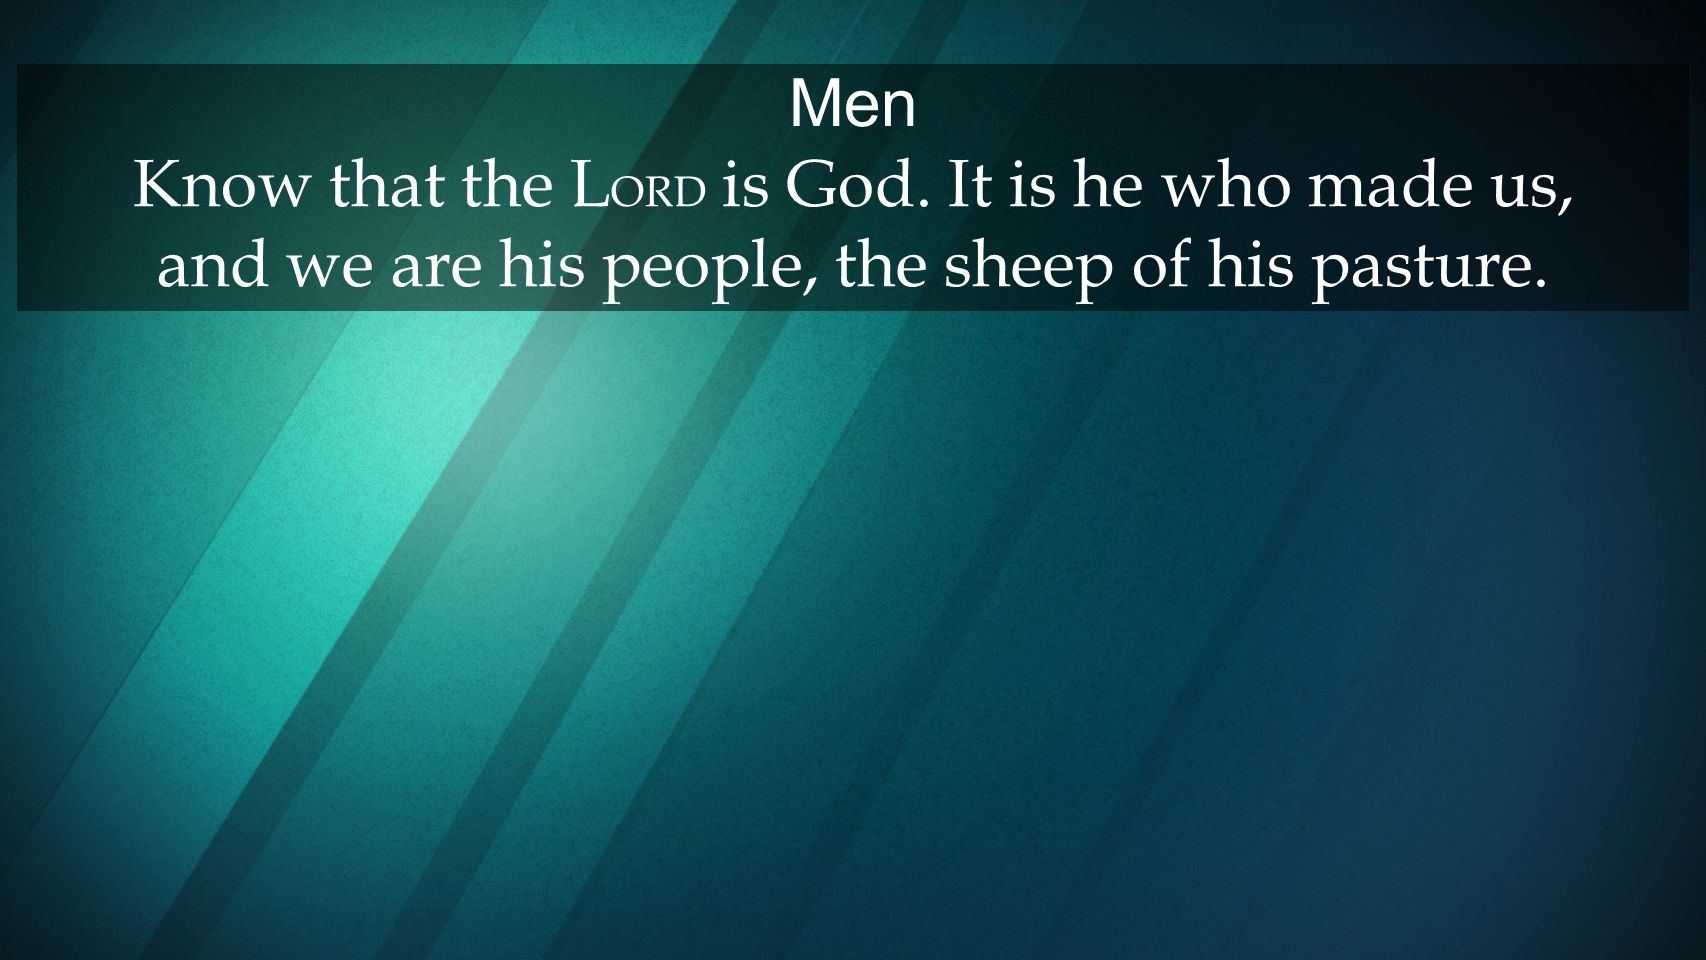 Men Know that the LORD is God